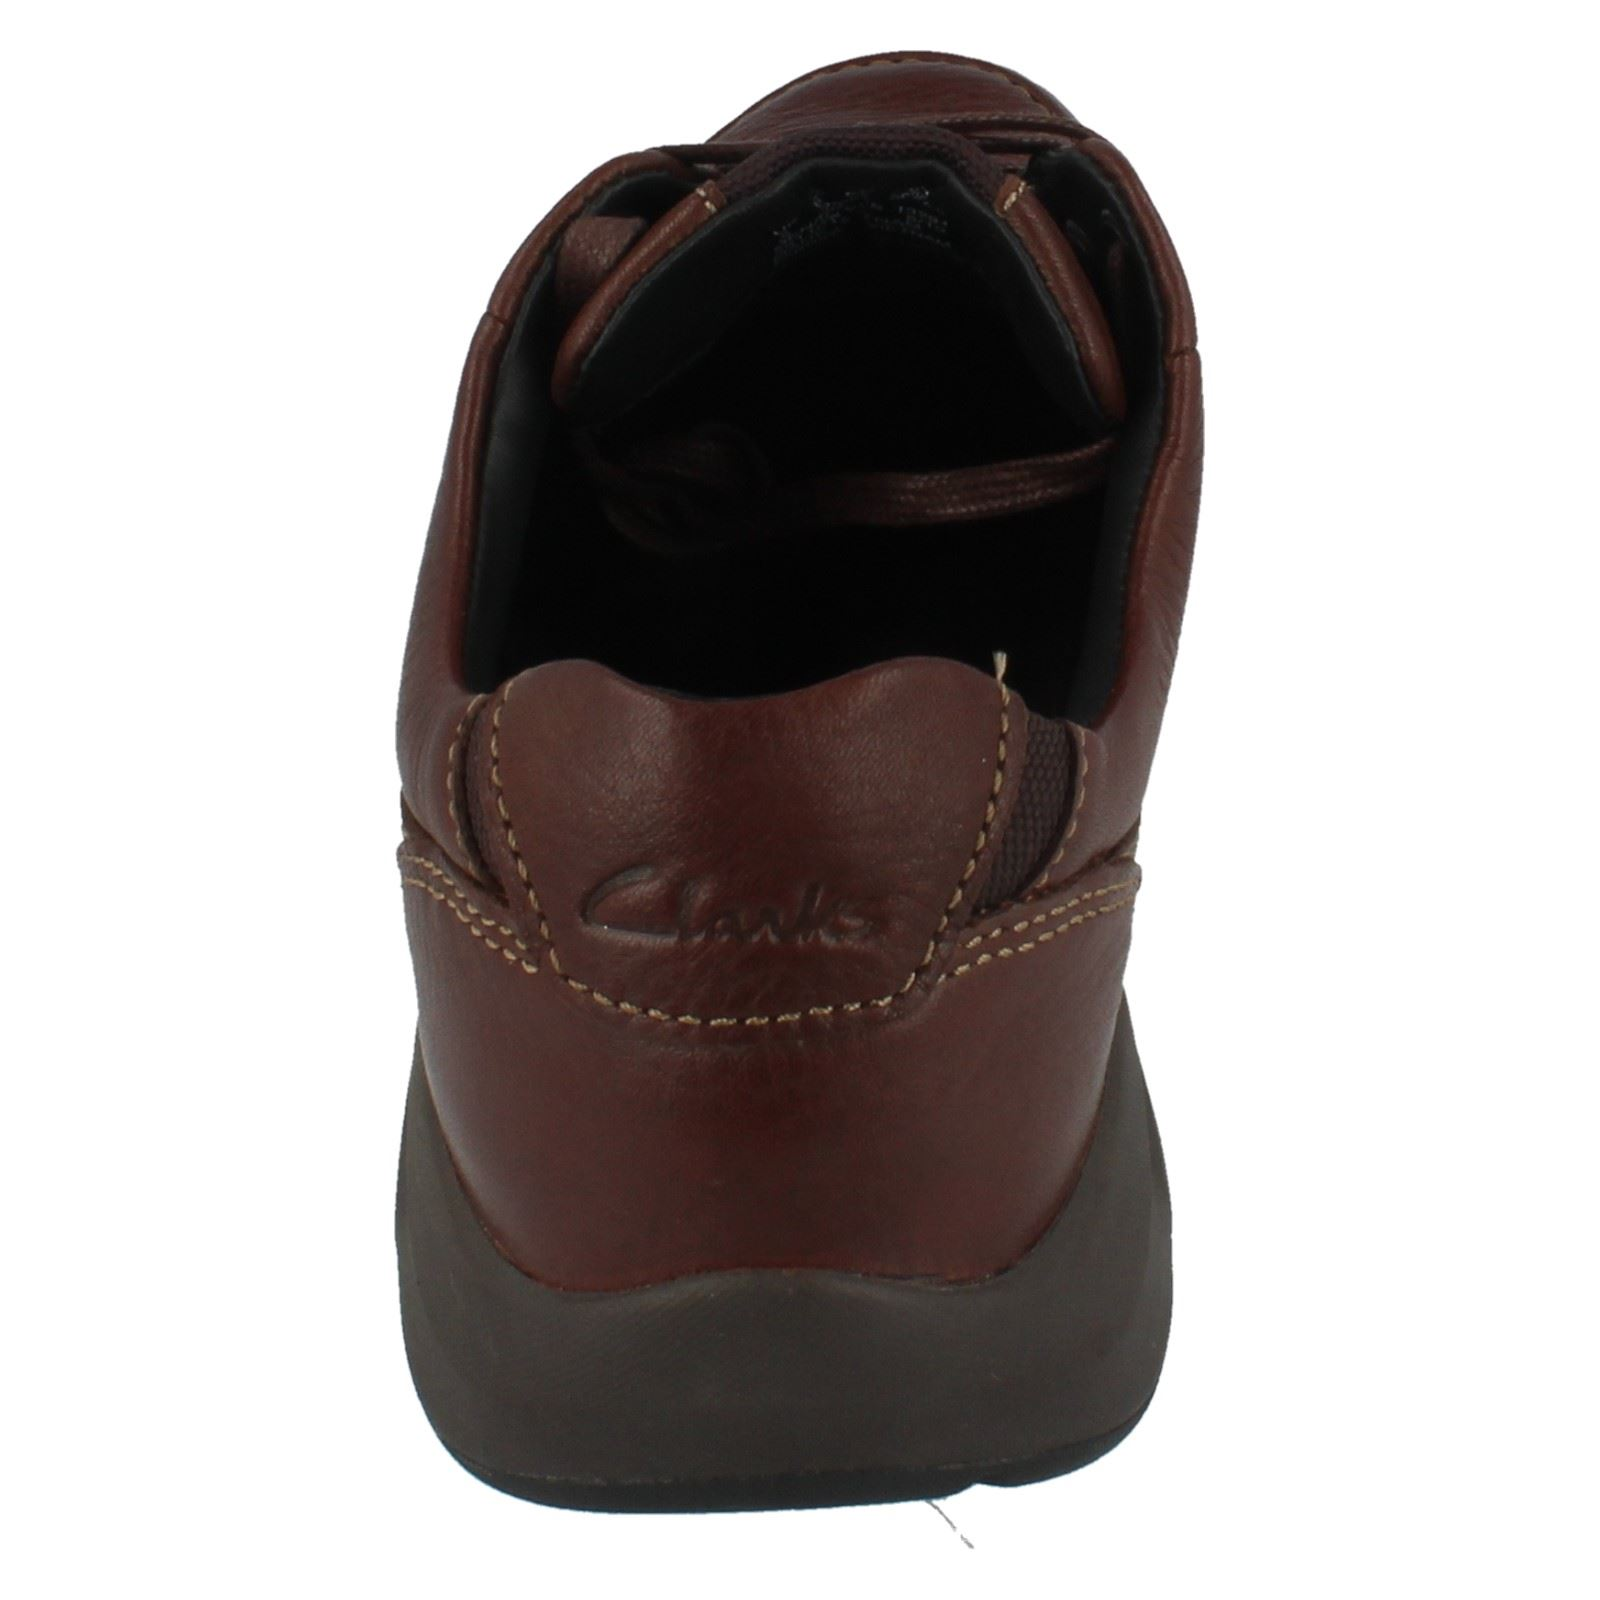 Herren Clarks Casual Lace Up Schuhes Style Style Schuhes Wavekorey Mix -W efb05e